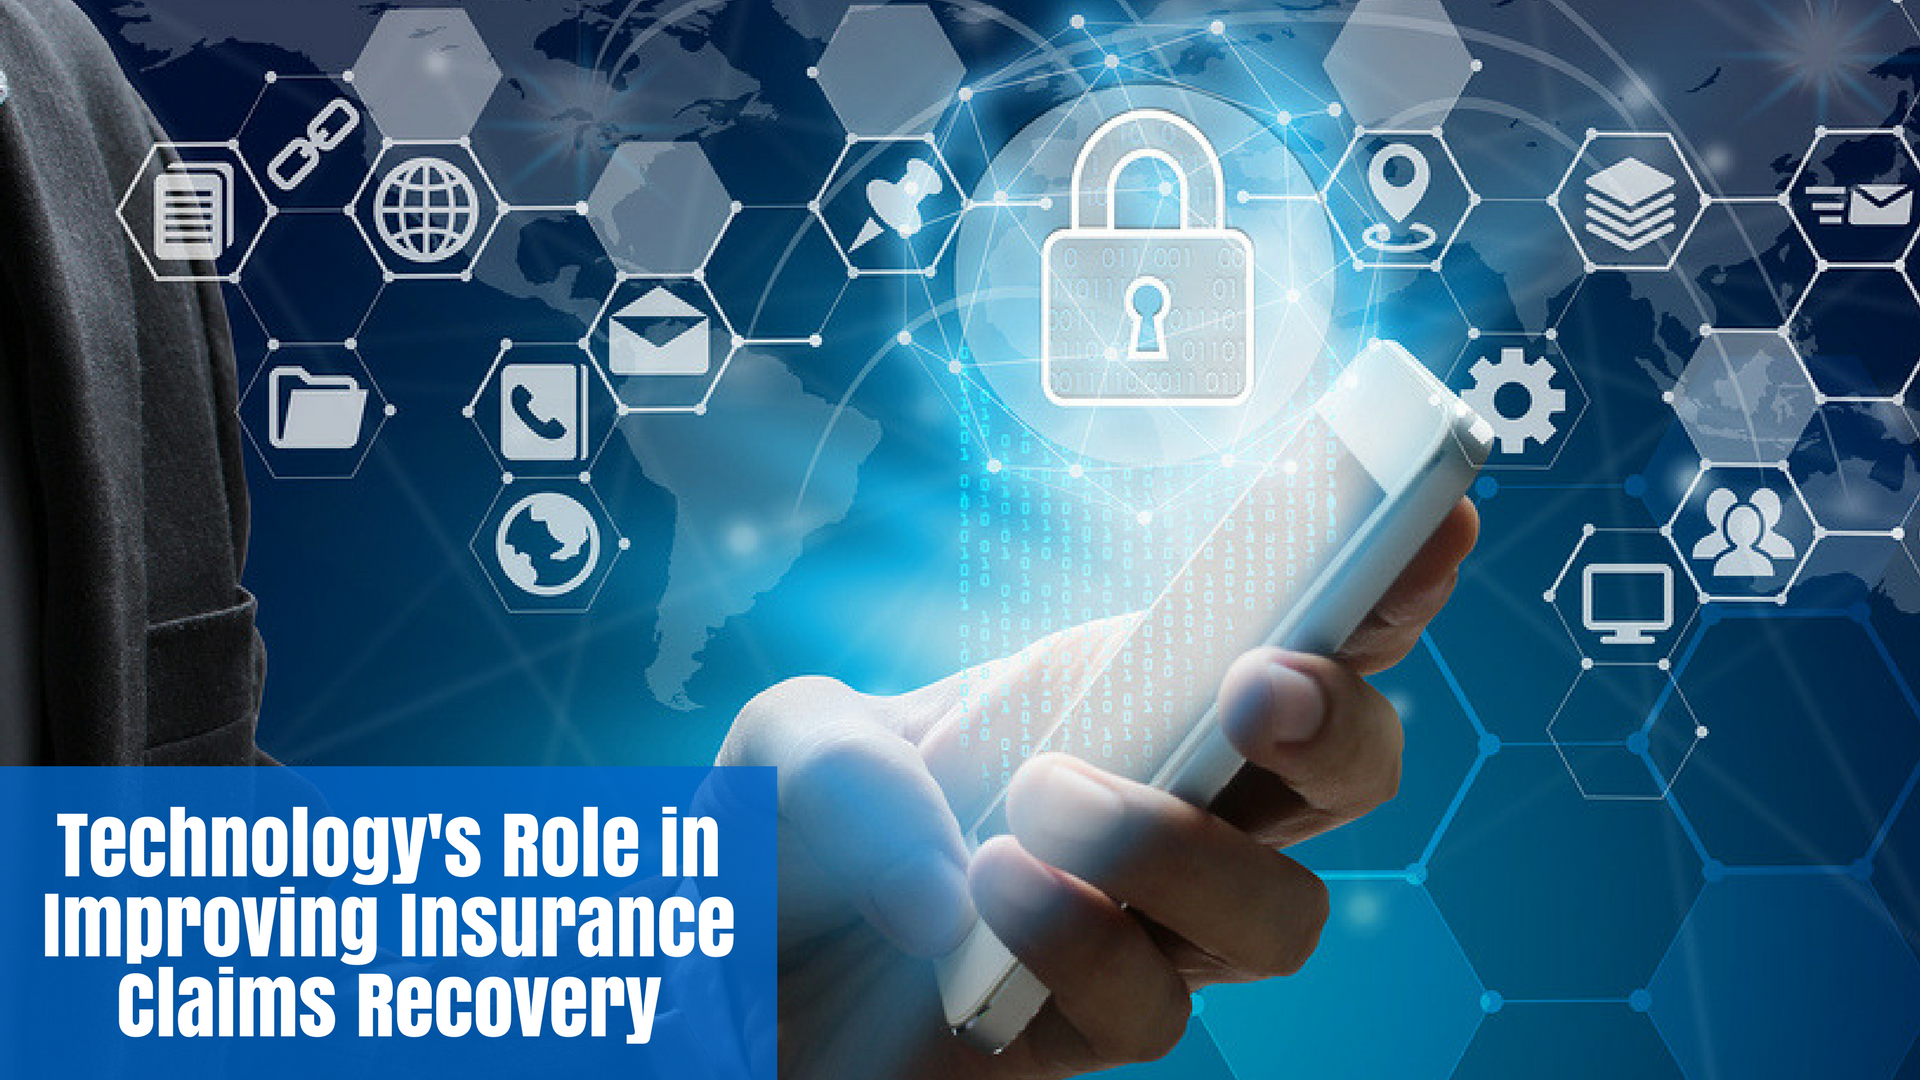 Technology's Role in Improving Insurance Claims Recovery